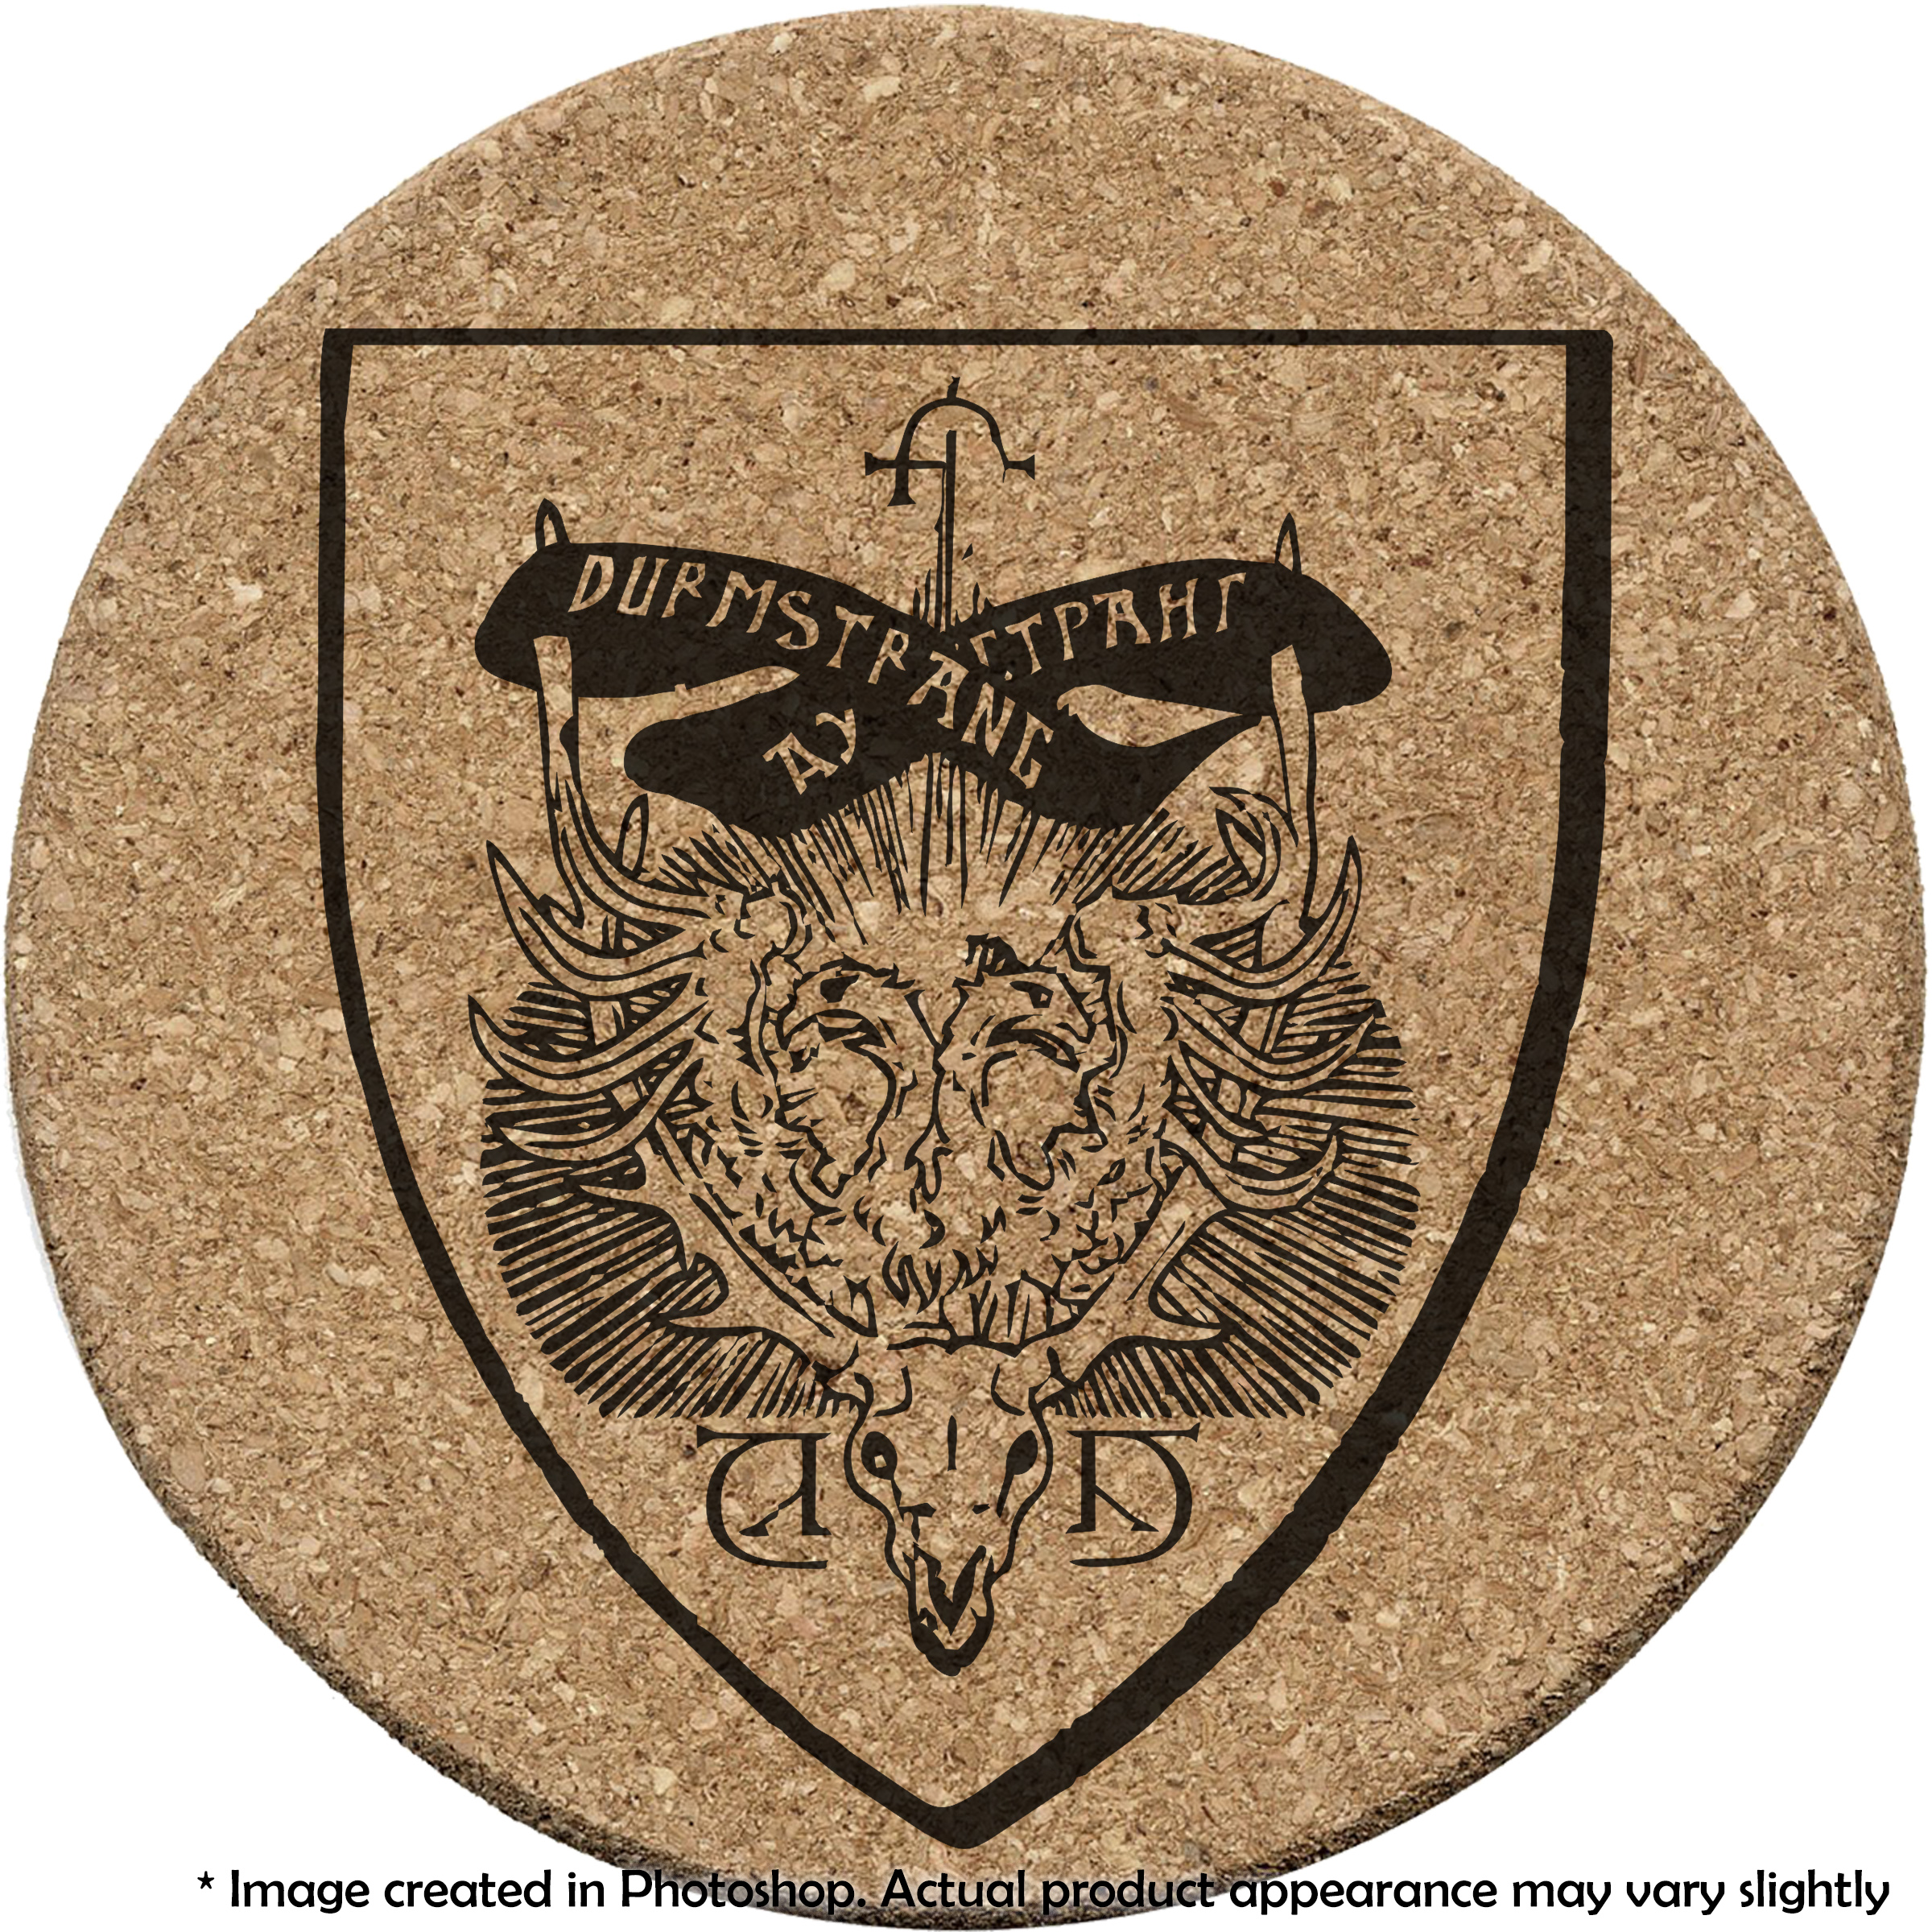 Durmstrang Coaster Art Of Steel The coat of arms of the denmark (danish: durmstrang coaster art of steel